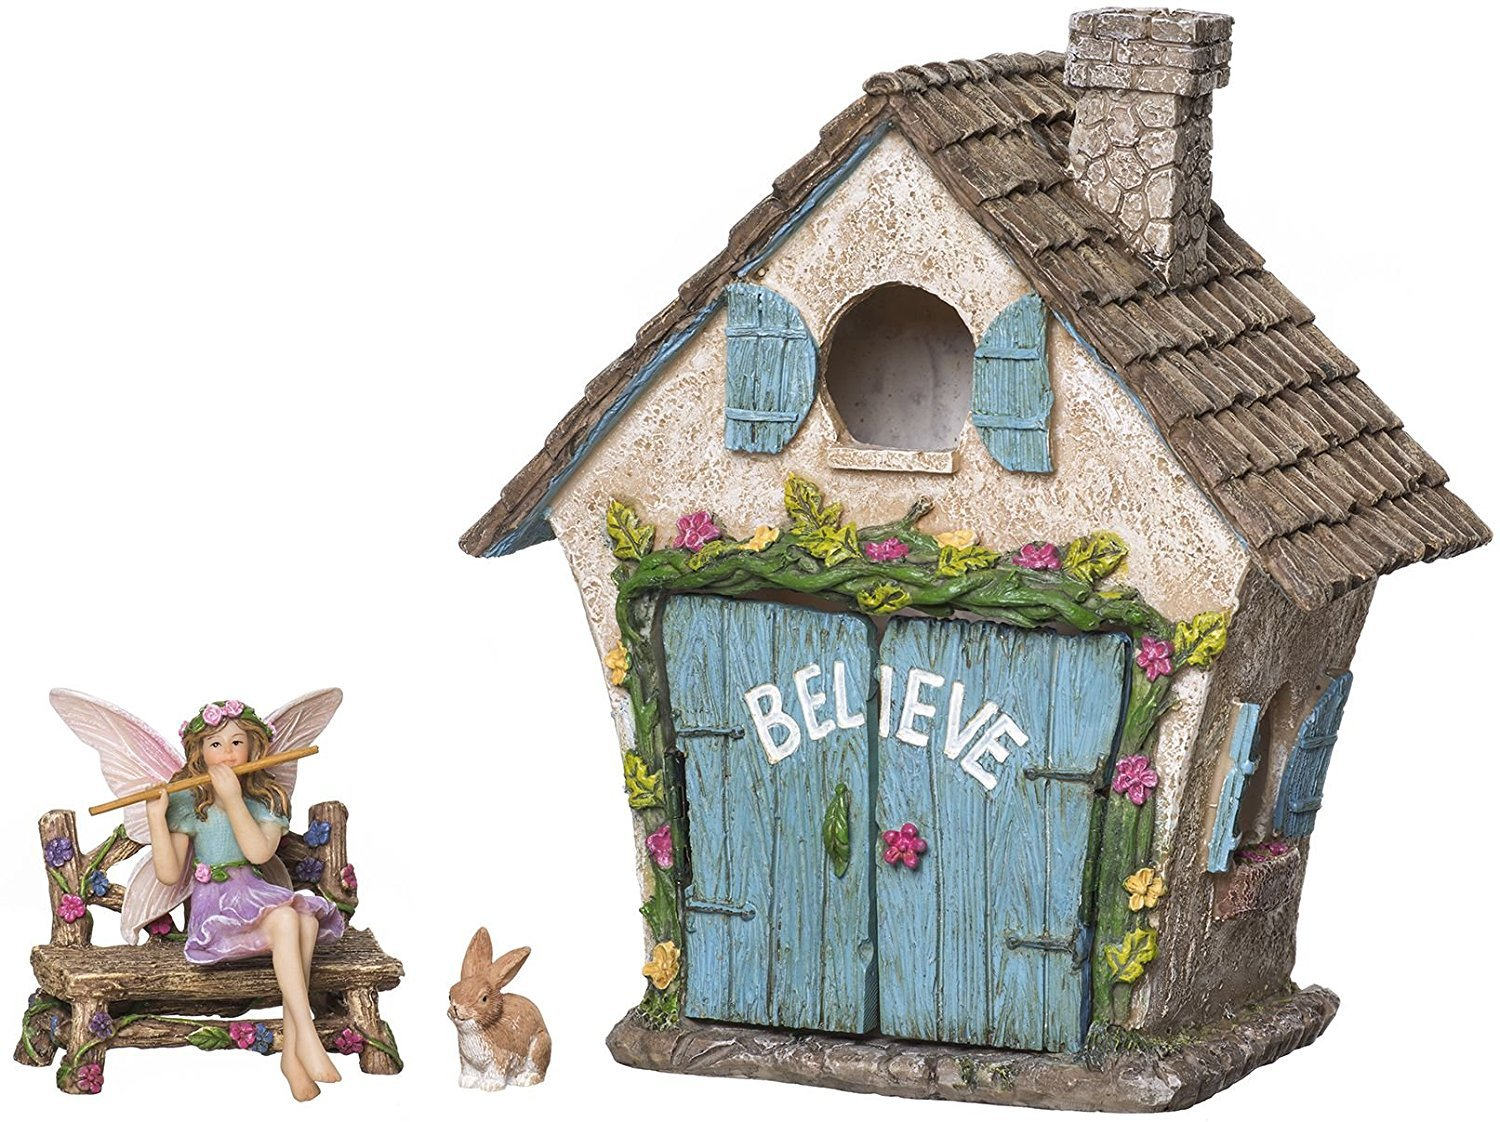 Joykick Fairy Garden House Kit - Hand Painted with Opening Doors and Miniature Fairy Figurine With Accessories - Indoor Outdoor Set of 4 pcs for Home or Lawn Decor by Joykick